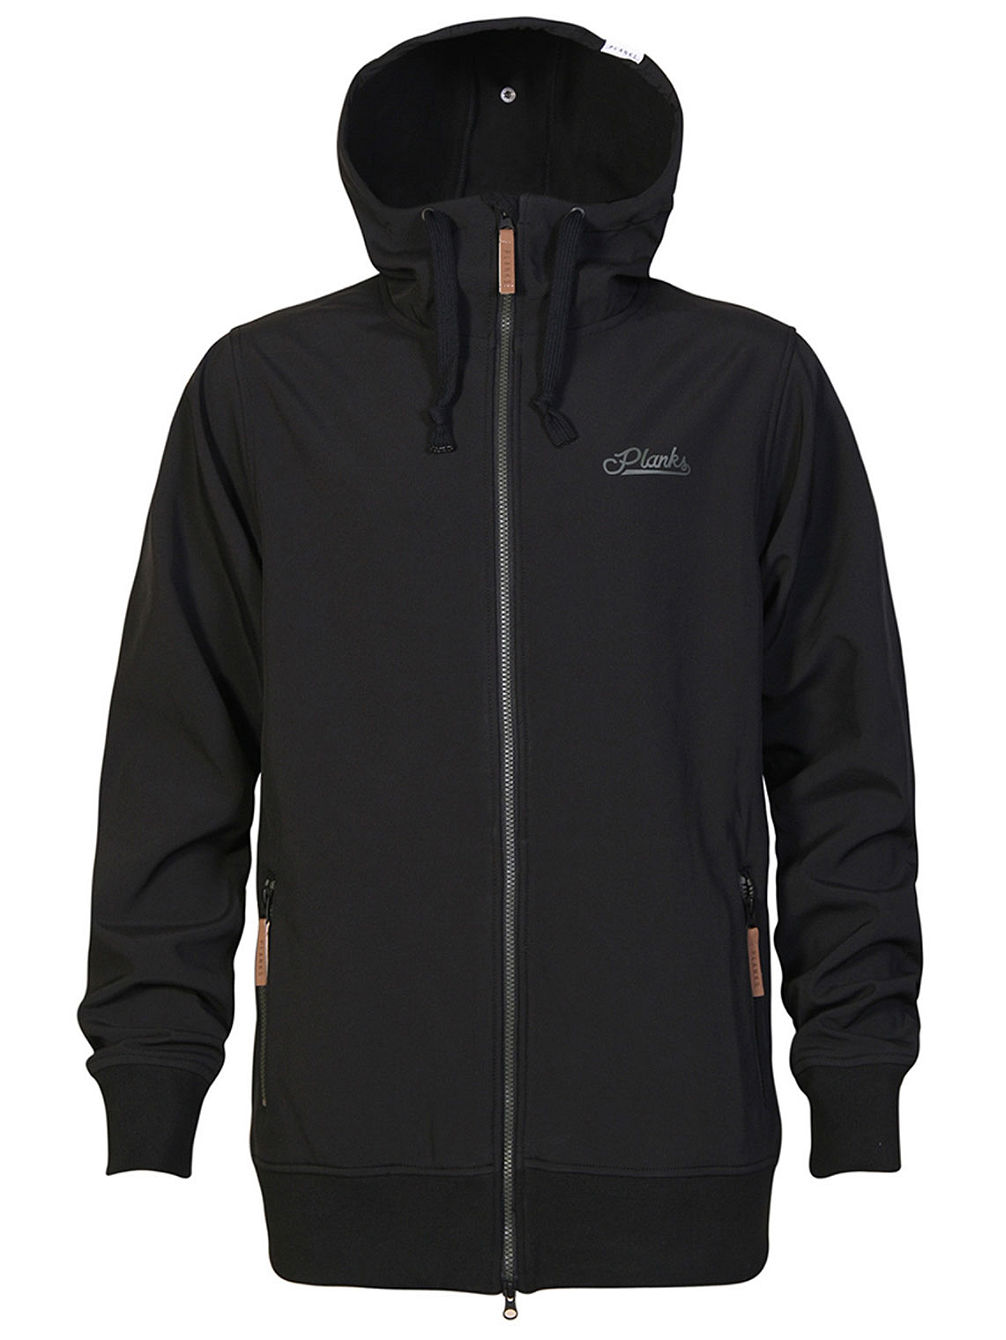 Dropout Softshell